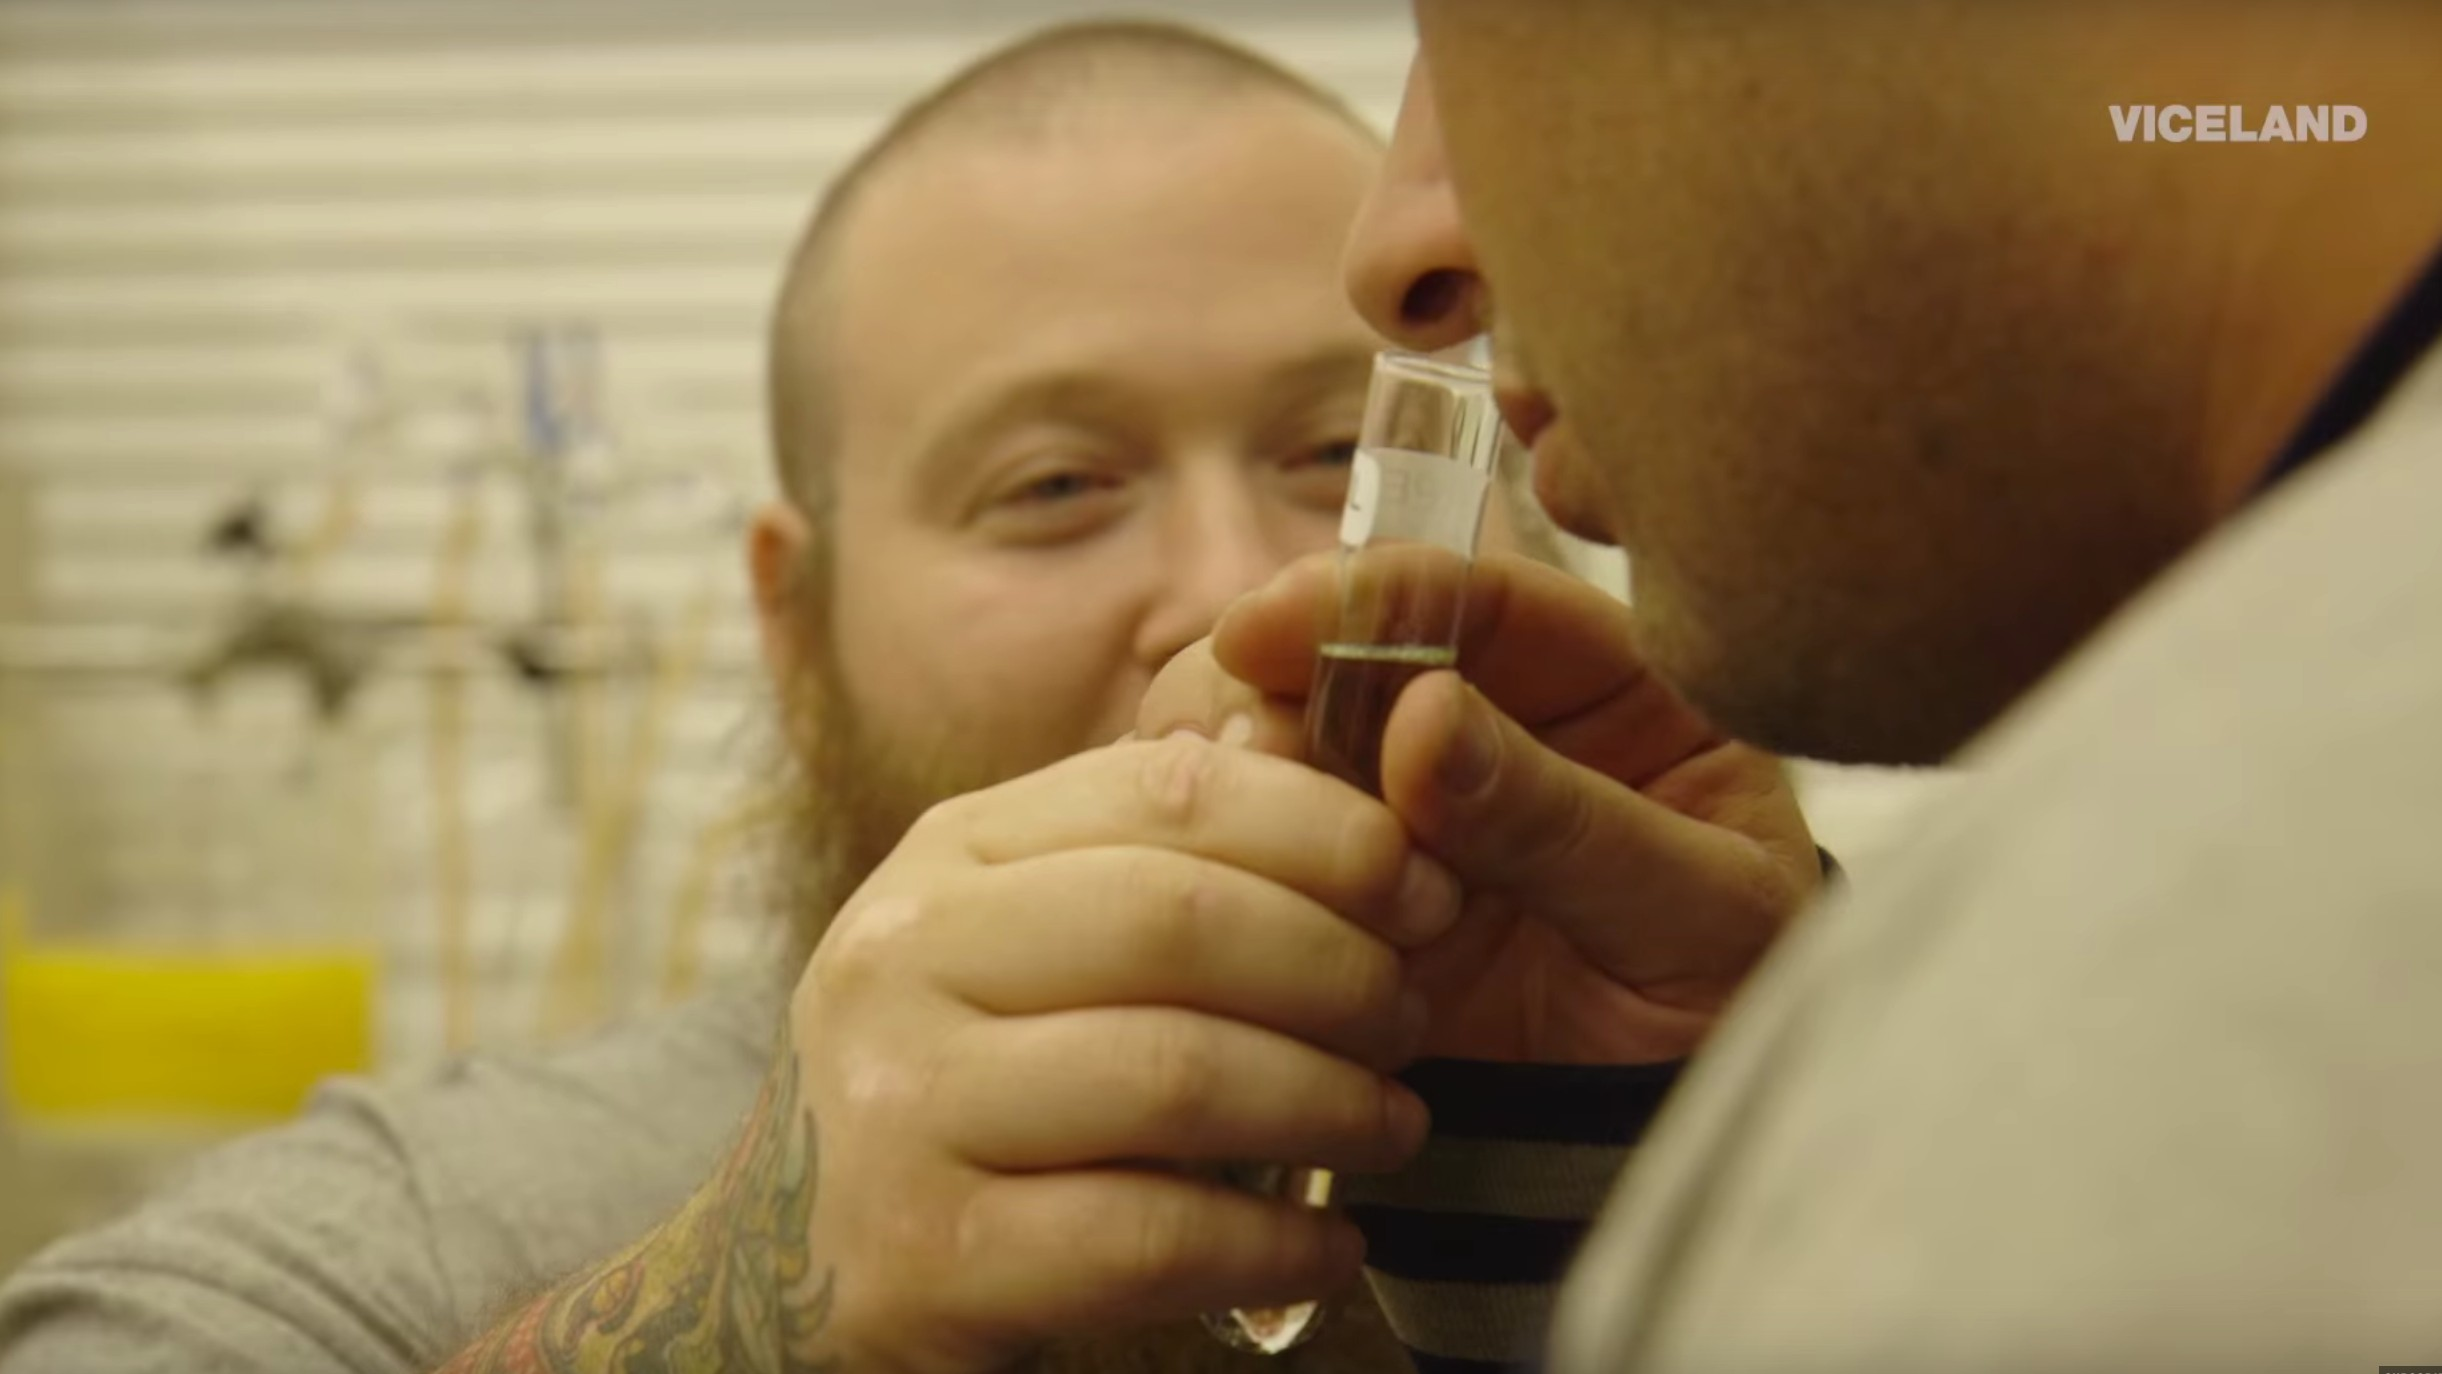 Here's Action Bronson at a High Tech Cannabis Lab, Whipping Up Dabs